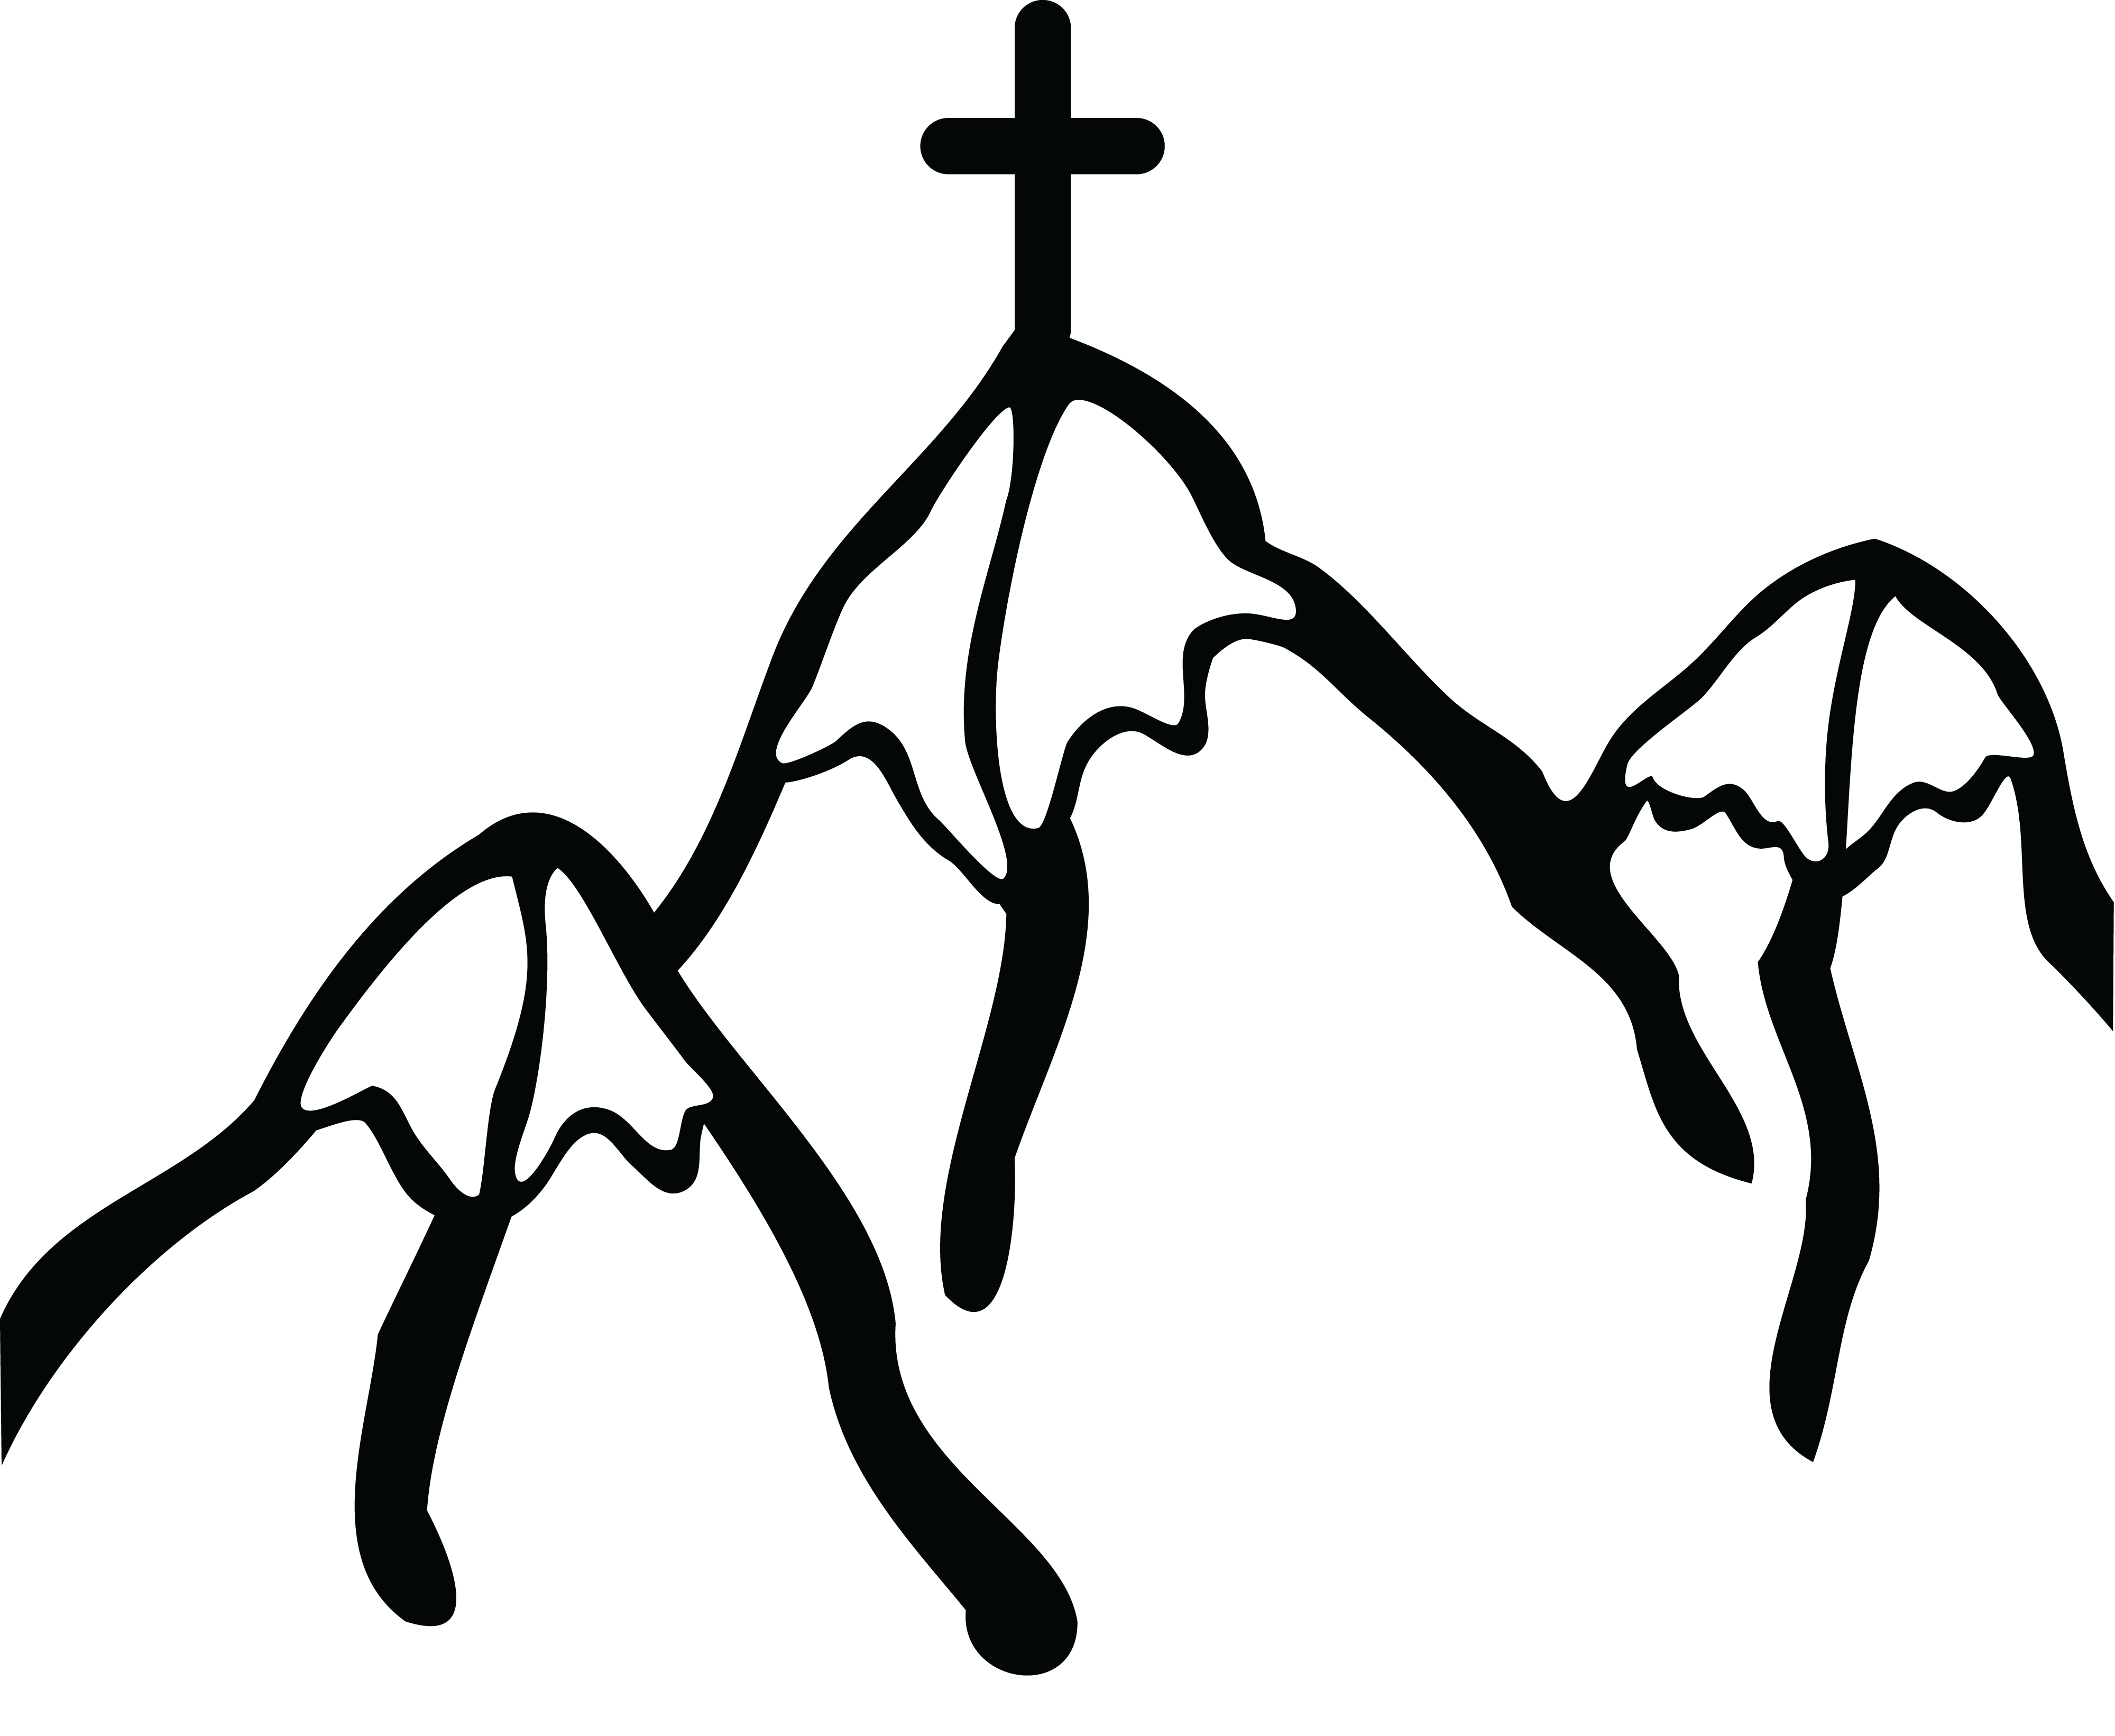 picture freeuse Cross clipart black and white png. Mountains desktop backgrounds free